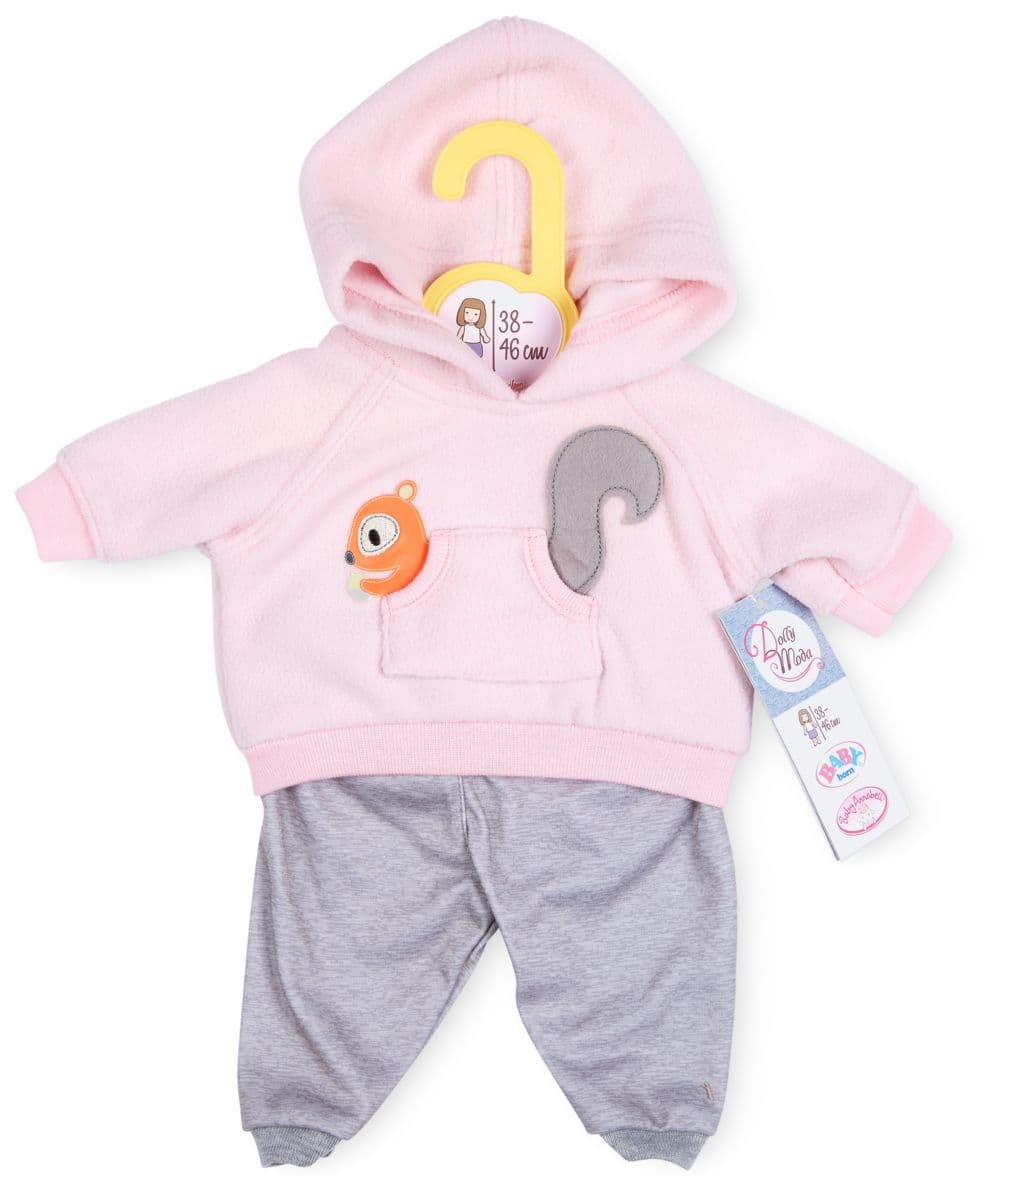 Dolly Moda Sport Outfit rose 38-46cm